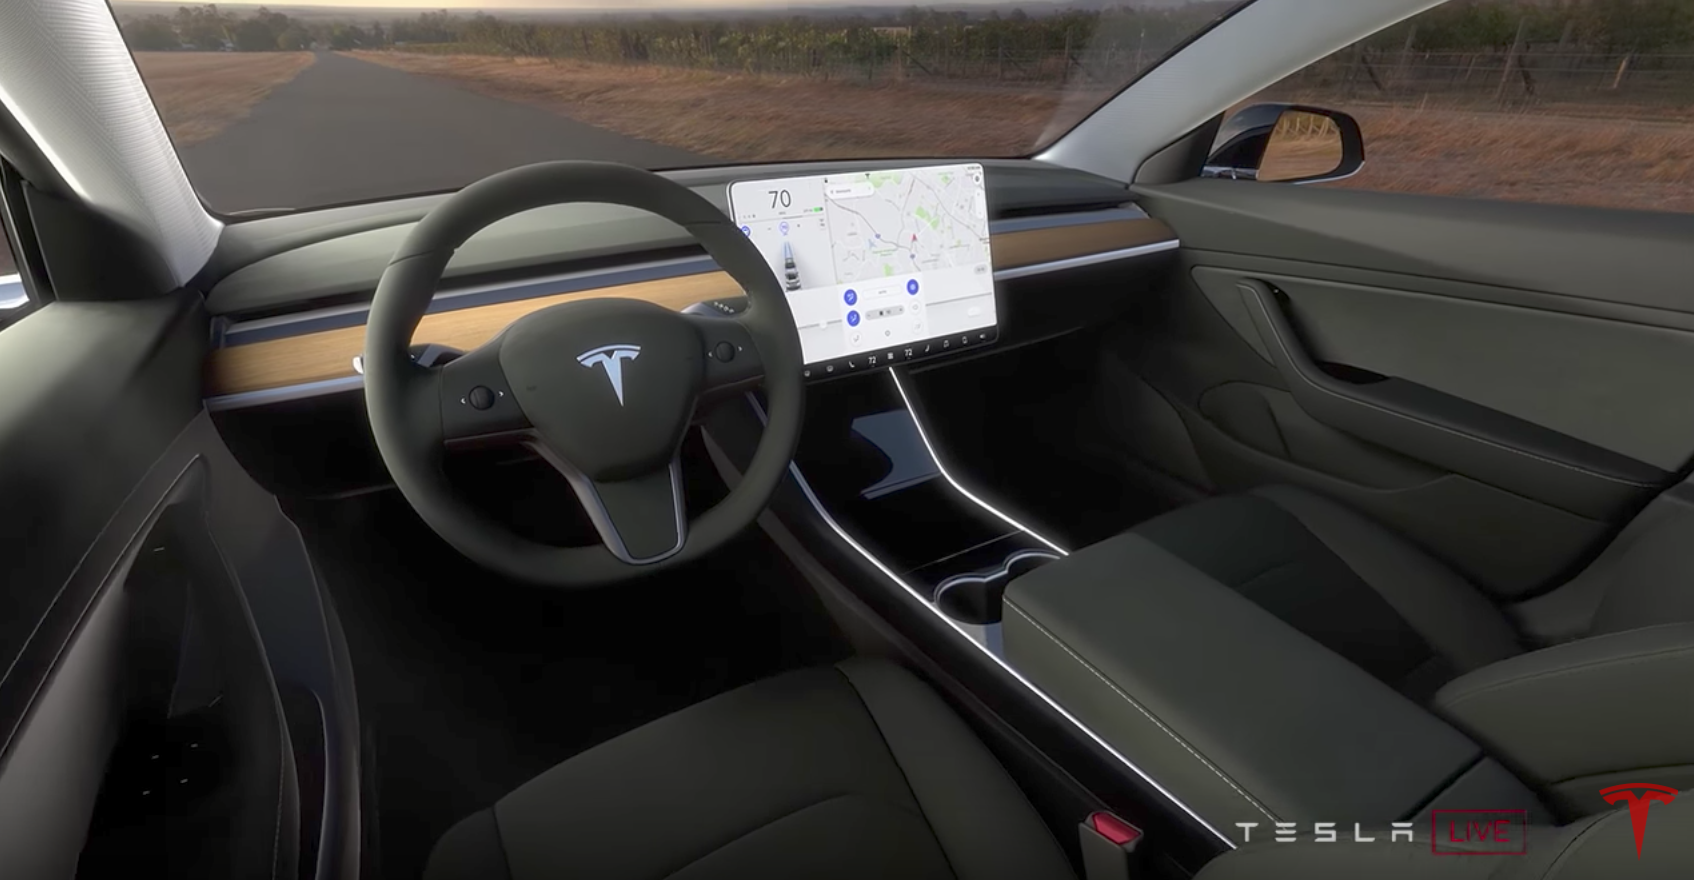 4 highlights from motor trend 39 s tesla model 3 test drive cleantechnica. Black Bedroom Furniture Sets. Home Design Ideas